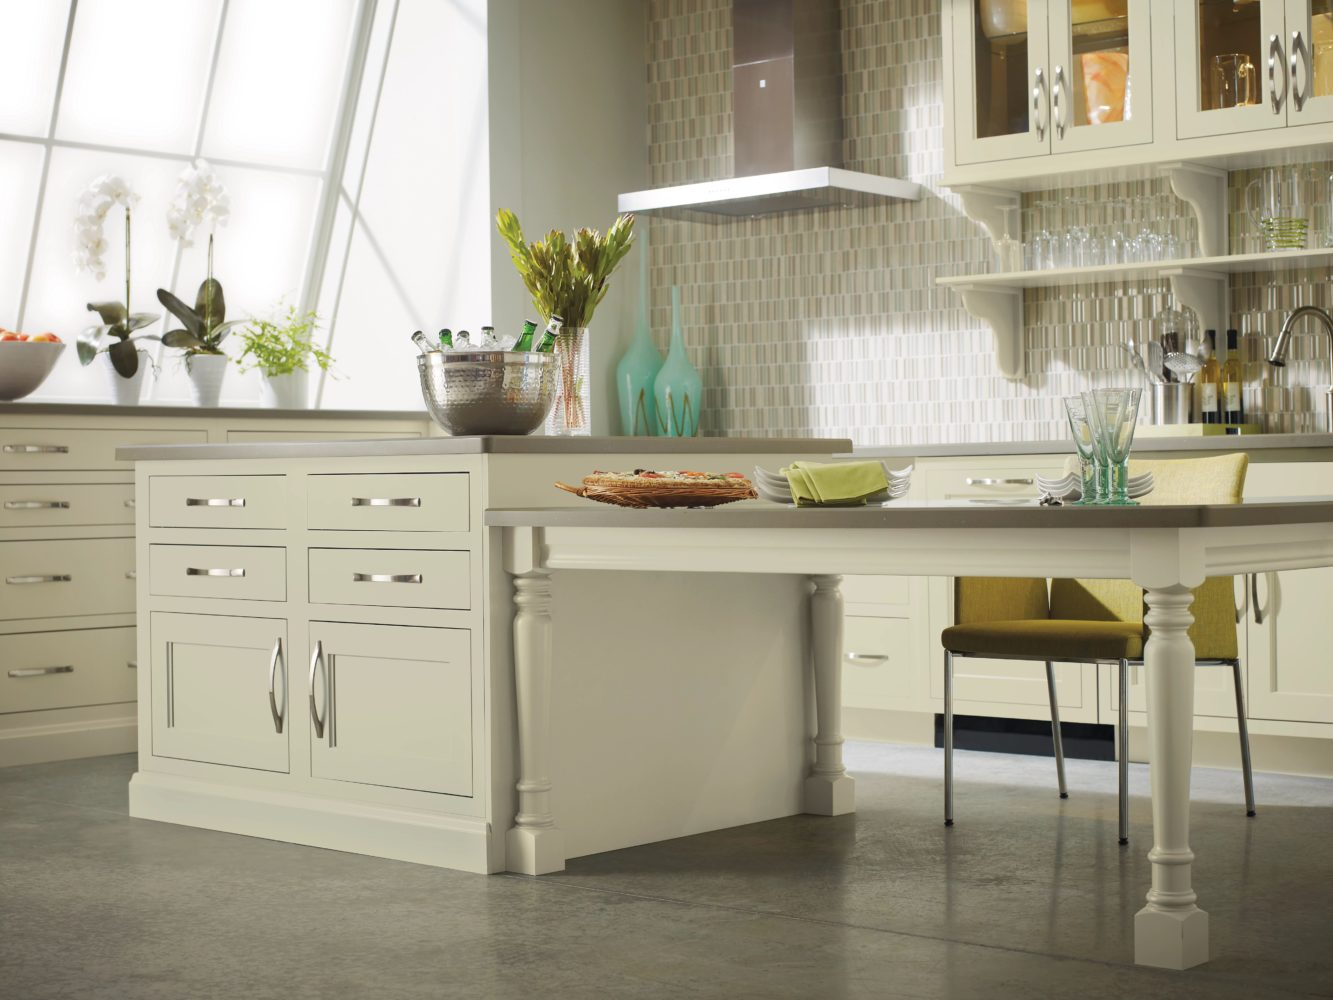 organic, pale green kitchen cabinetry with large picture window